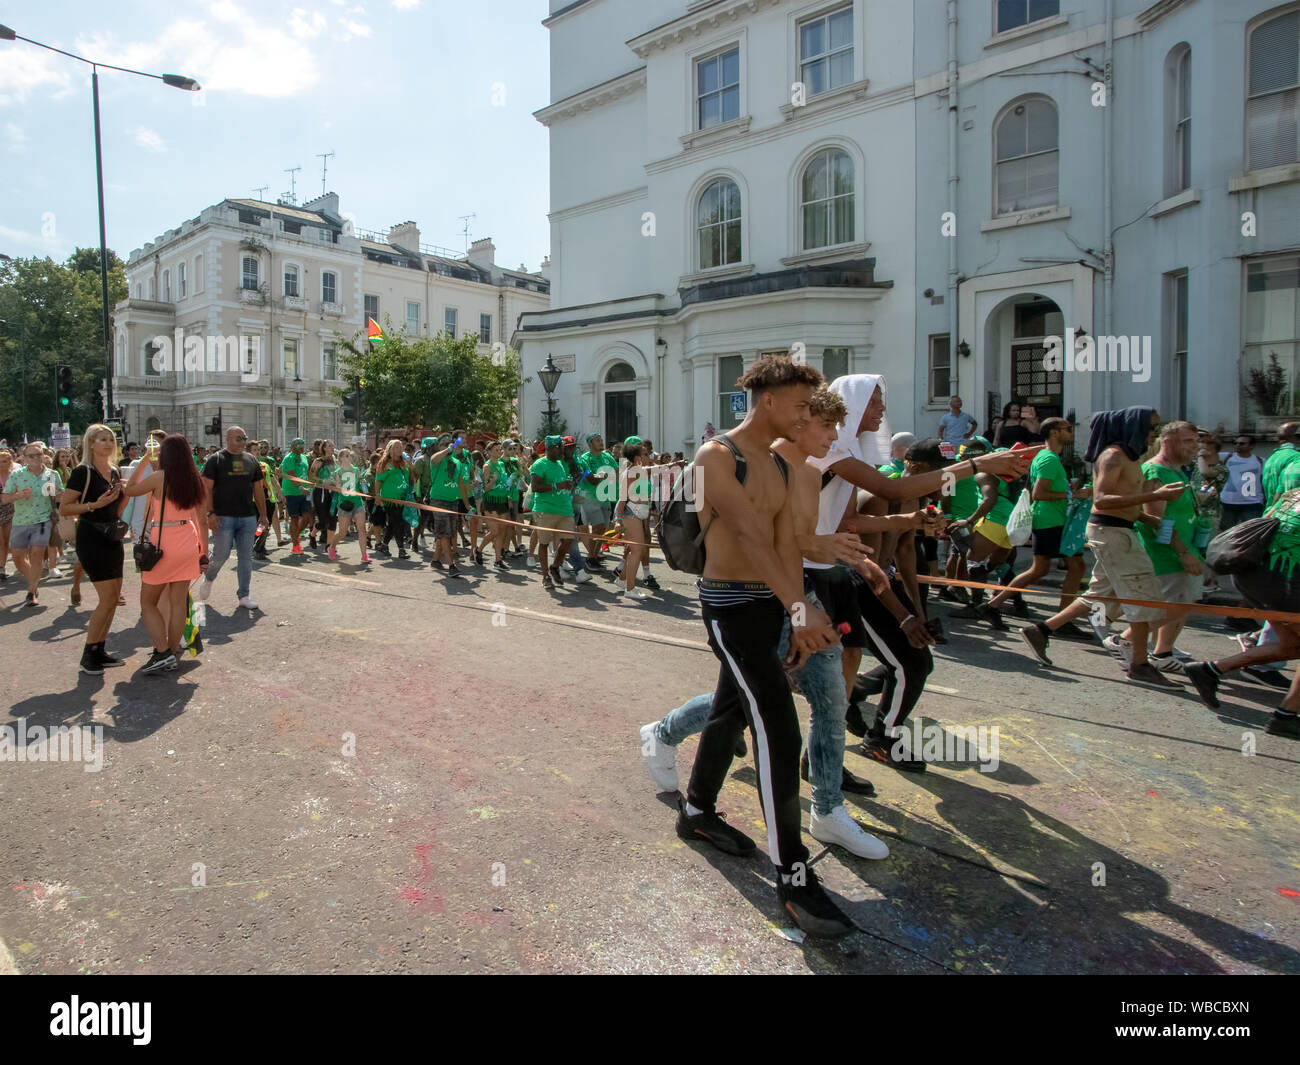 Masqueraders moving along a road behind a sound system truck. The main events of Notting Hill Carnival 2019 got underway on Sunday, with over a million revellers hitting the streets of West London, amongst floats, masqueraders, steel bands, and sound systems. Stock Photo